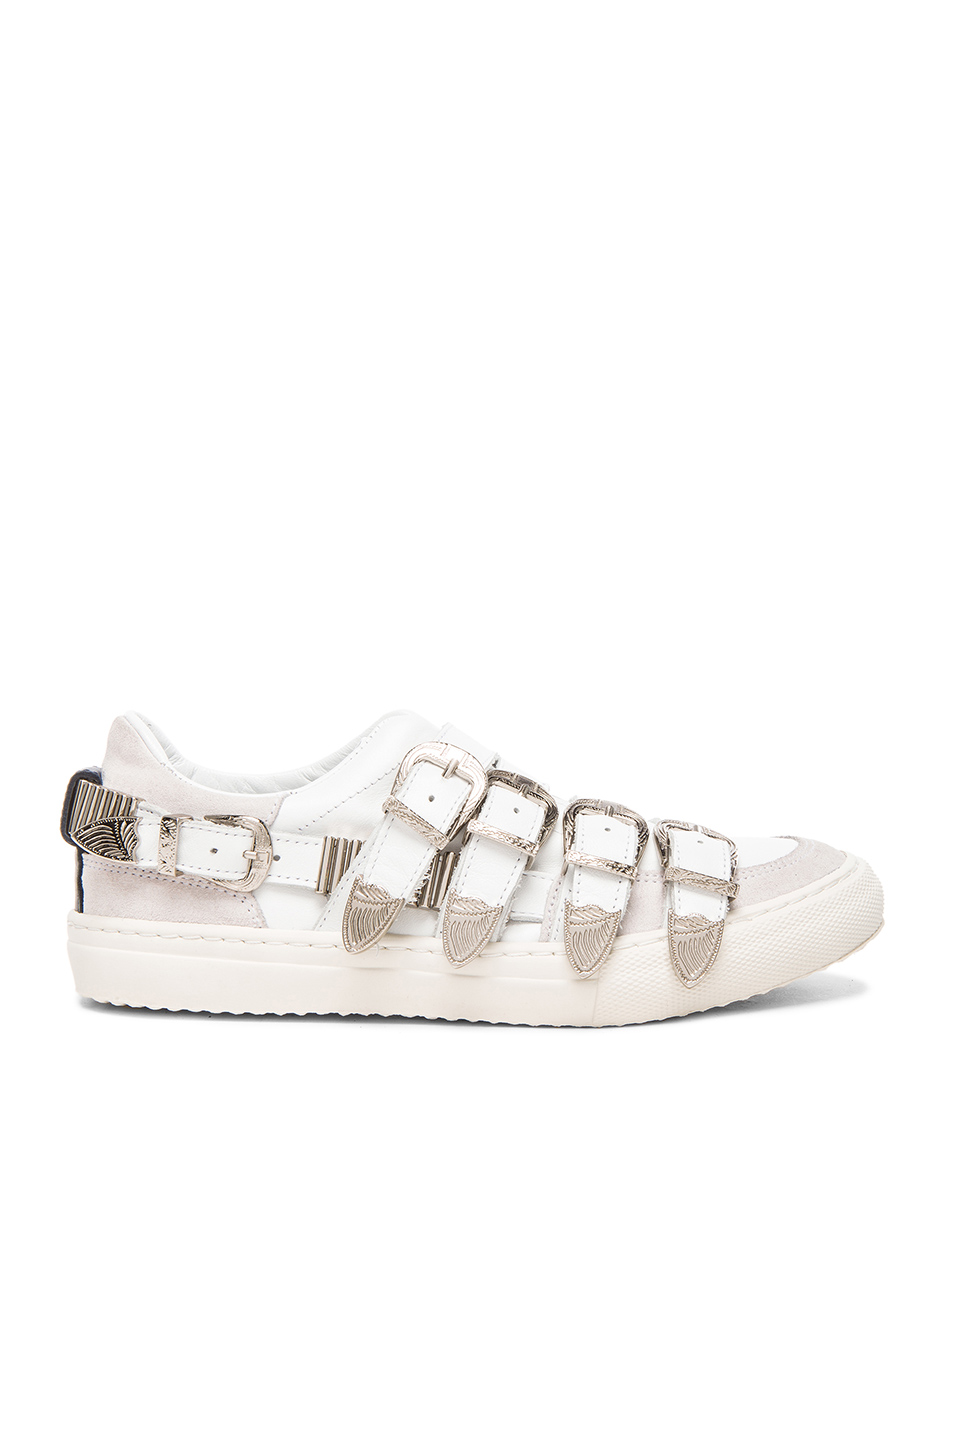 embellished sandals - White Toga Archives mYHop0IxAx